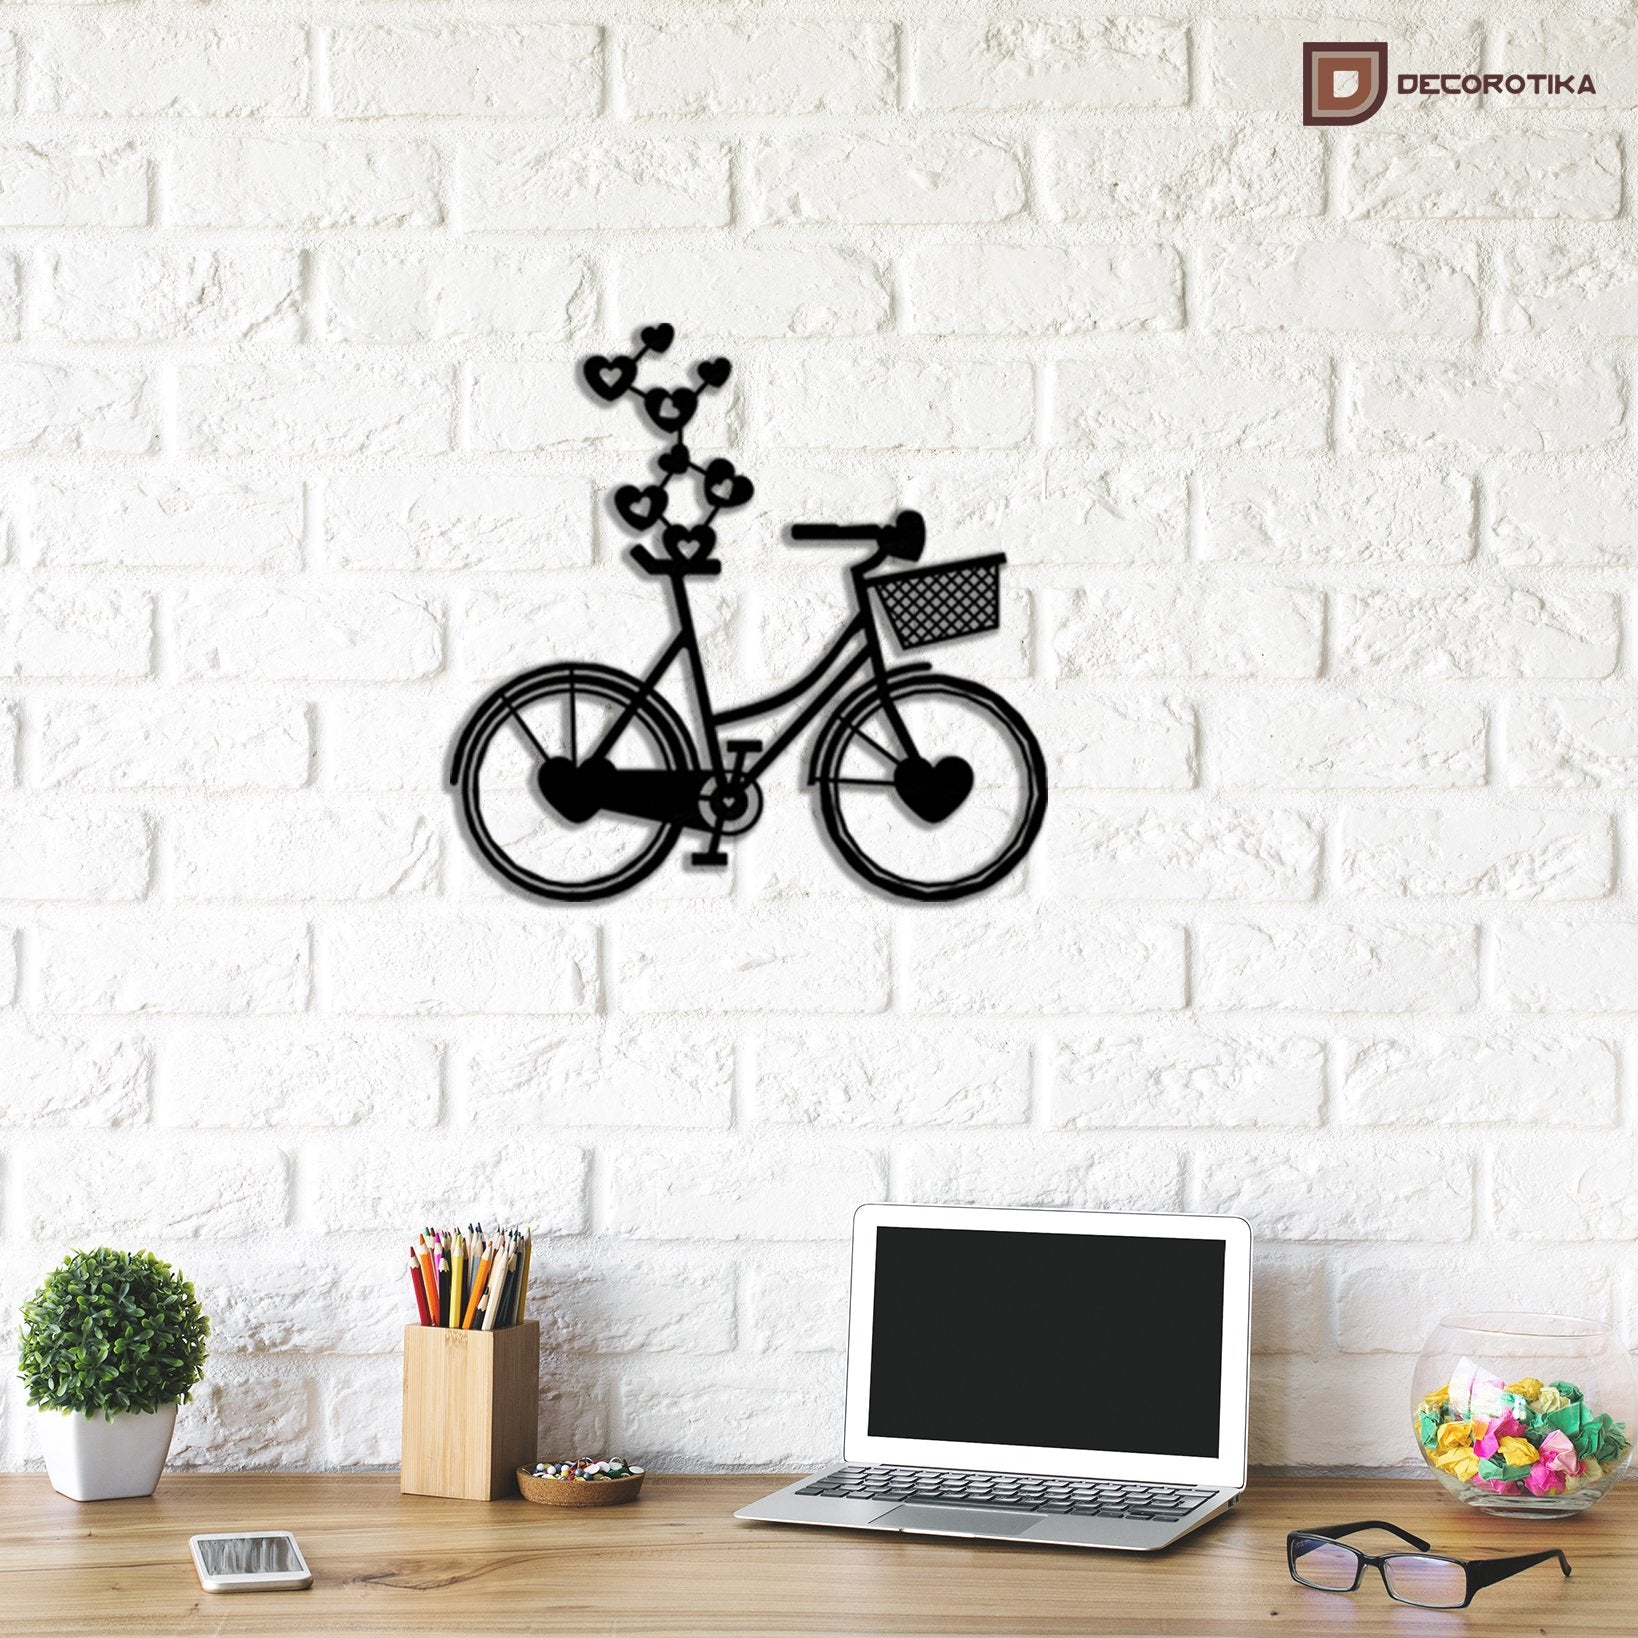 Bicycle Handmade Metal Decorative Wall Art - Decorotika